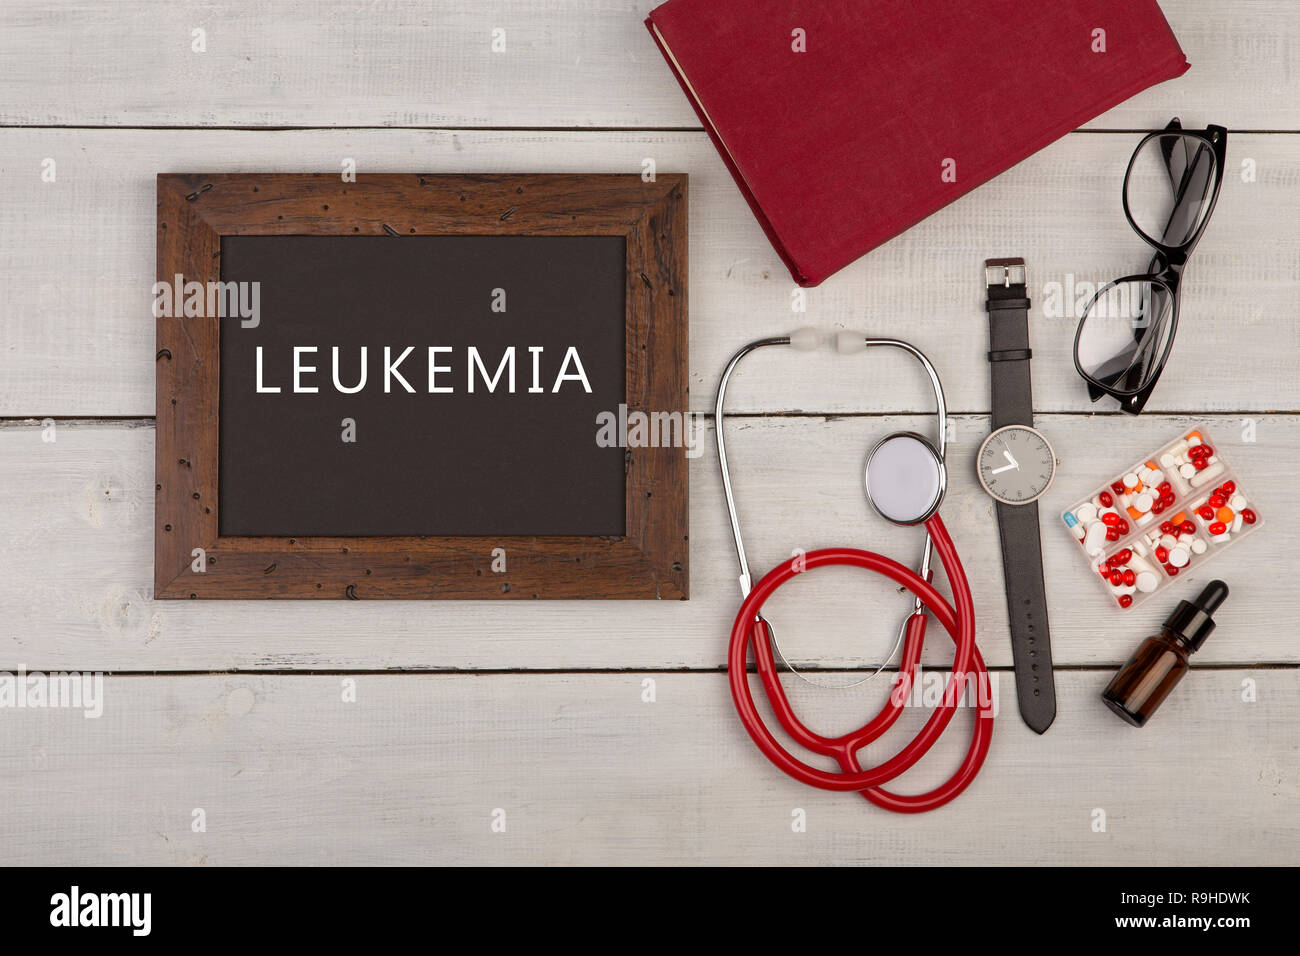 Medecine concept - blackboard with text 'Leukemia', pills, book, eyeglasses, watch and stethoscope on white wooden background - Stock Image